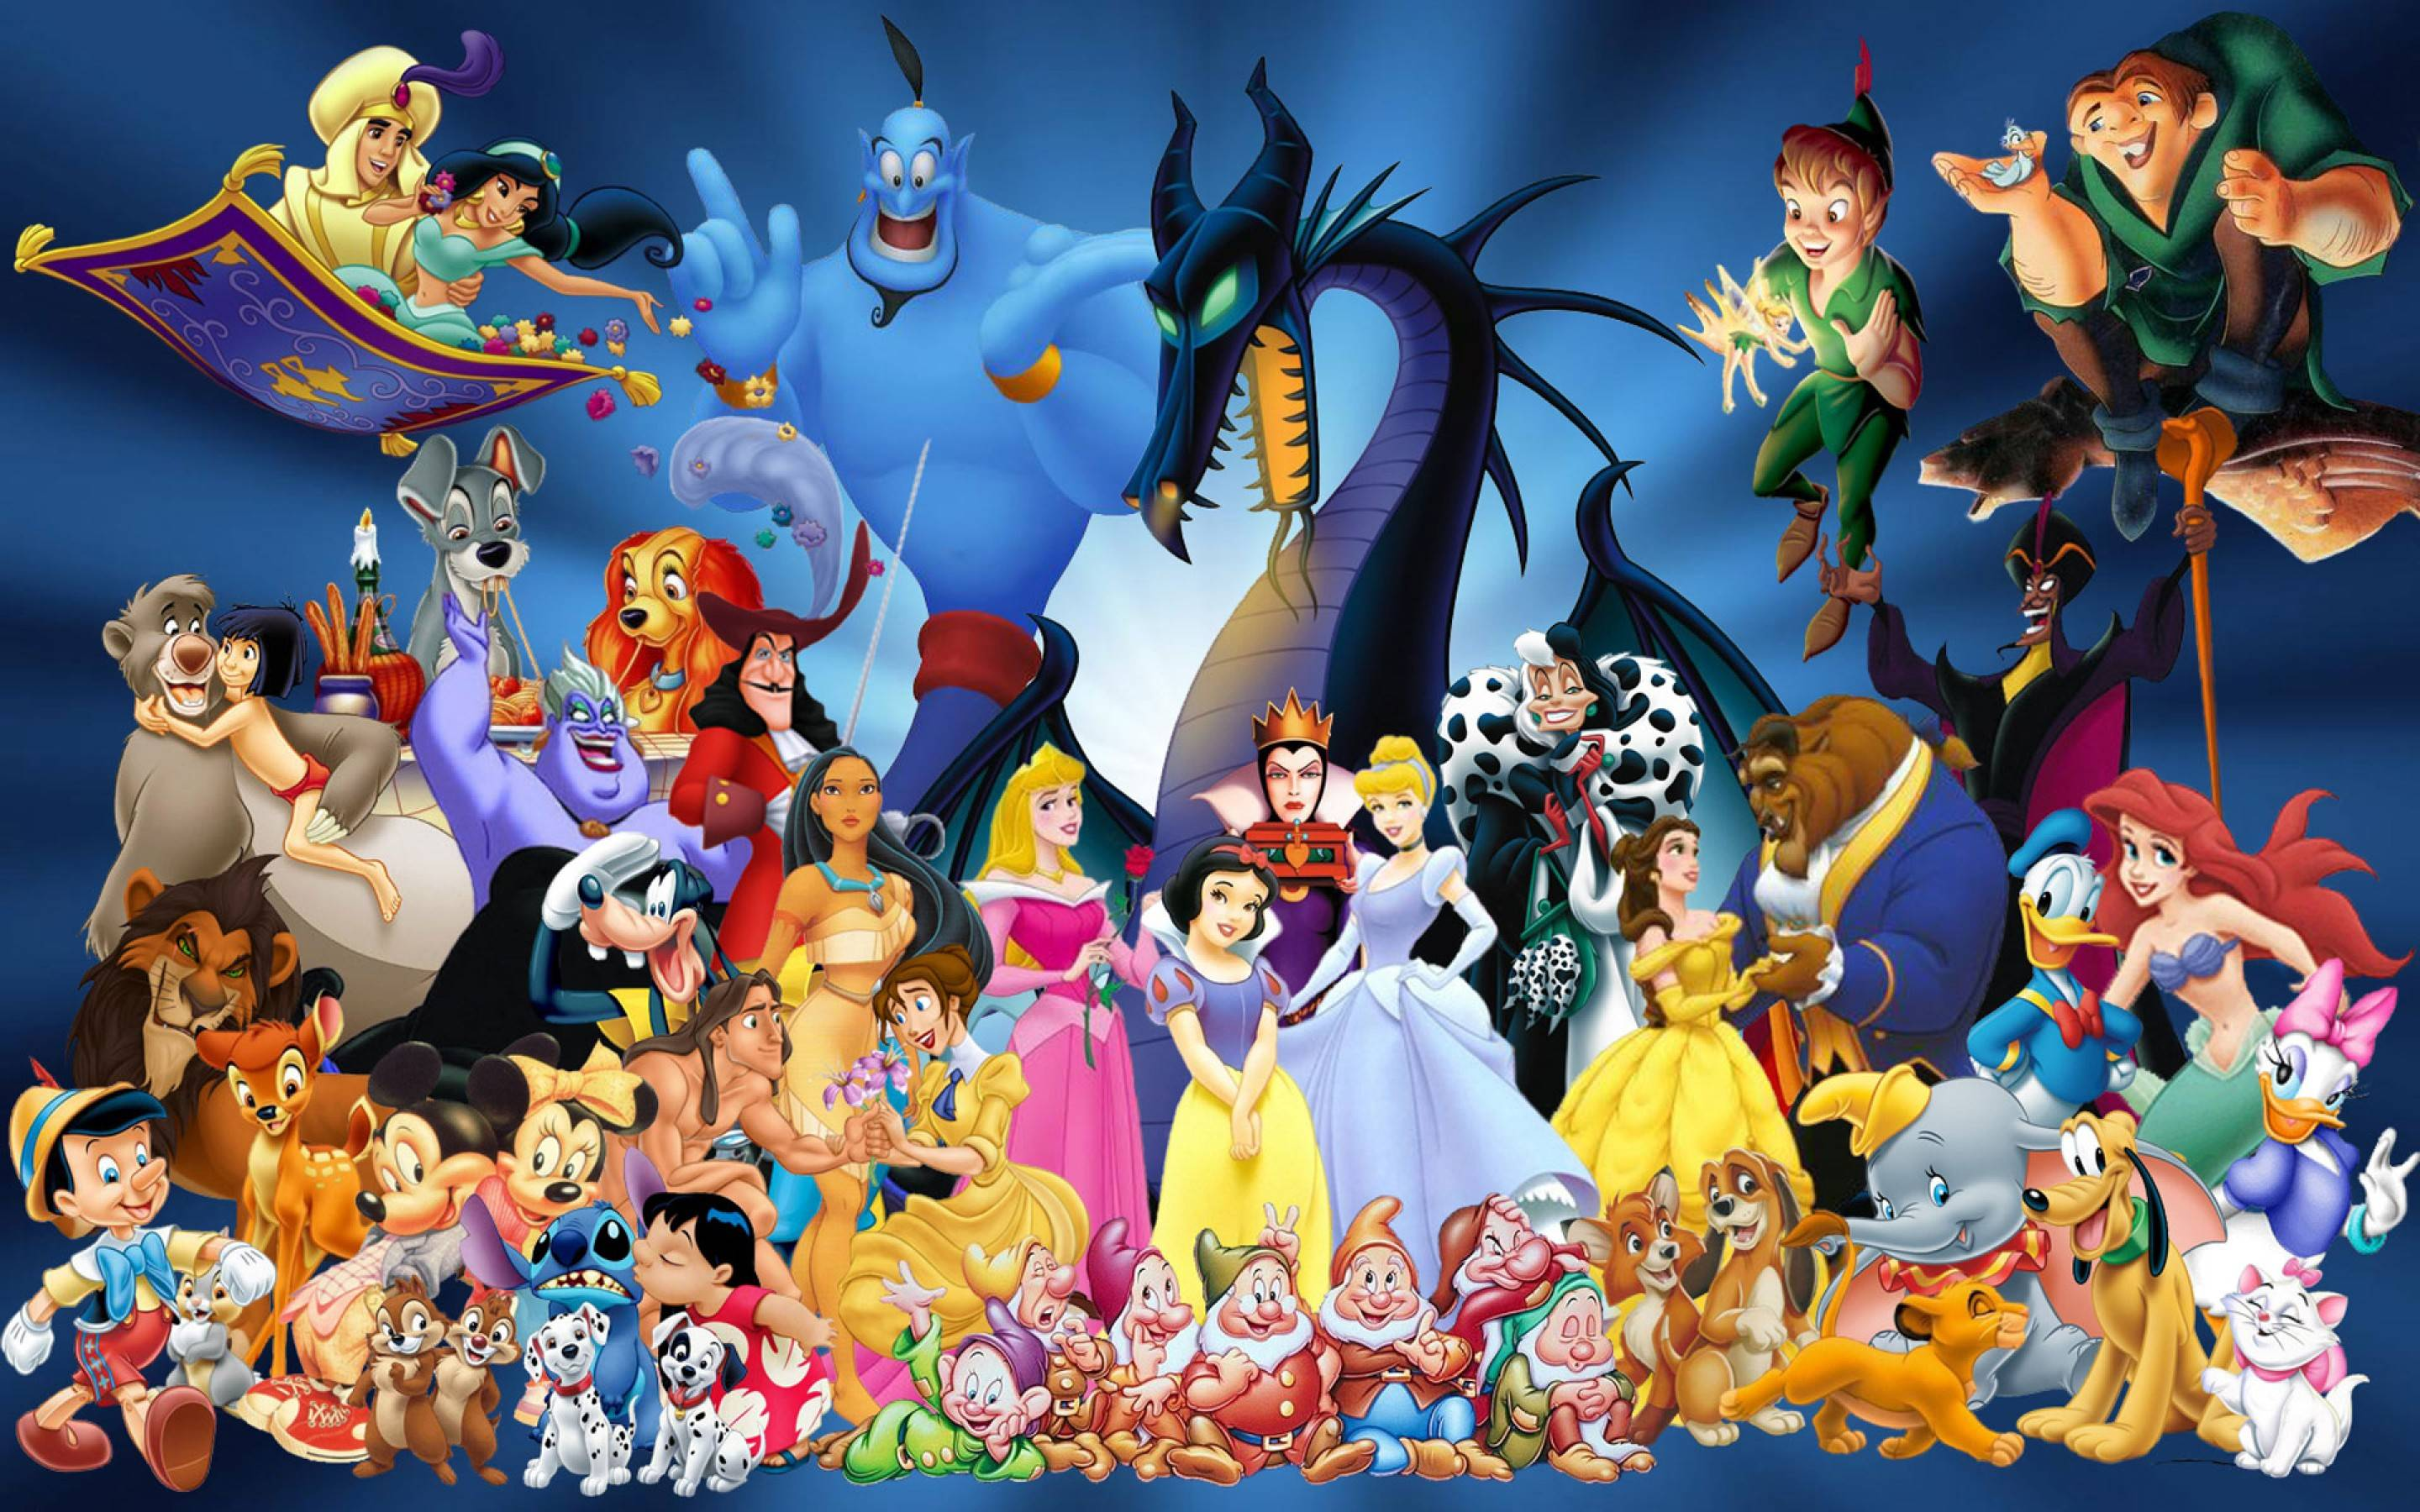 Free Disney Wallpapers For Computer - Wallpaper Cave